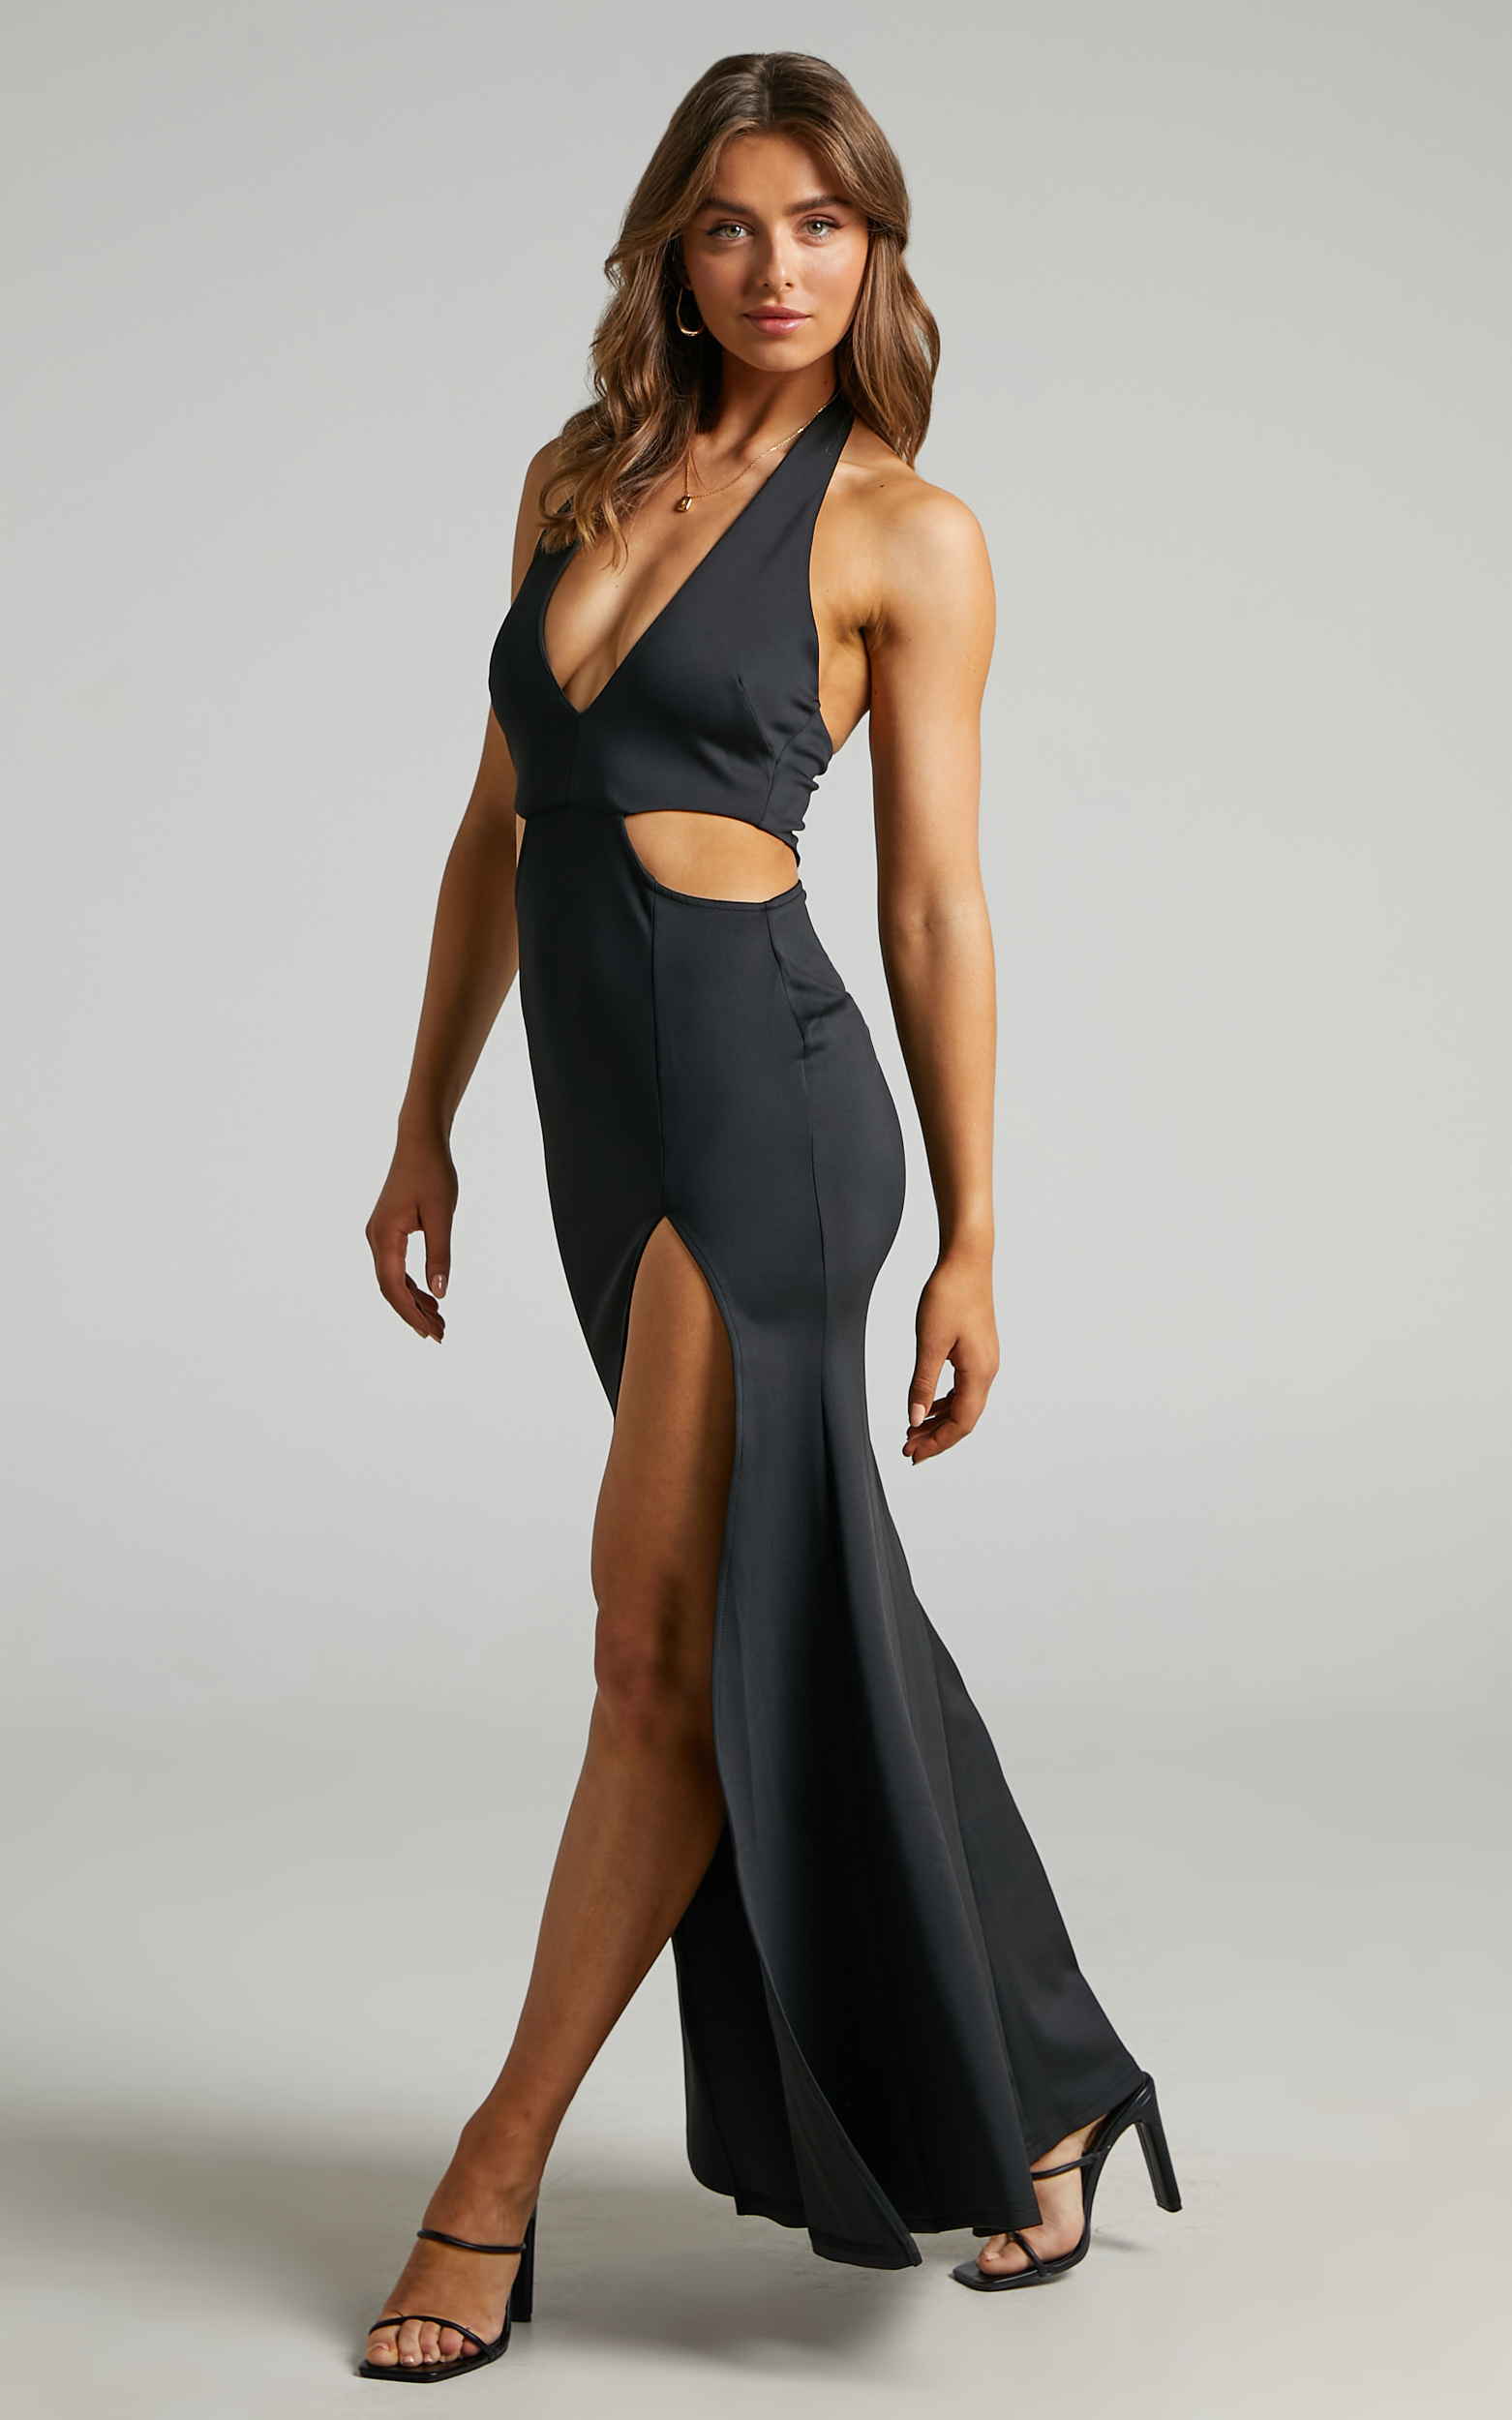 Avery Cut Out Detail Dress in Black - 06, BLK1, hi-res image number null